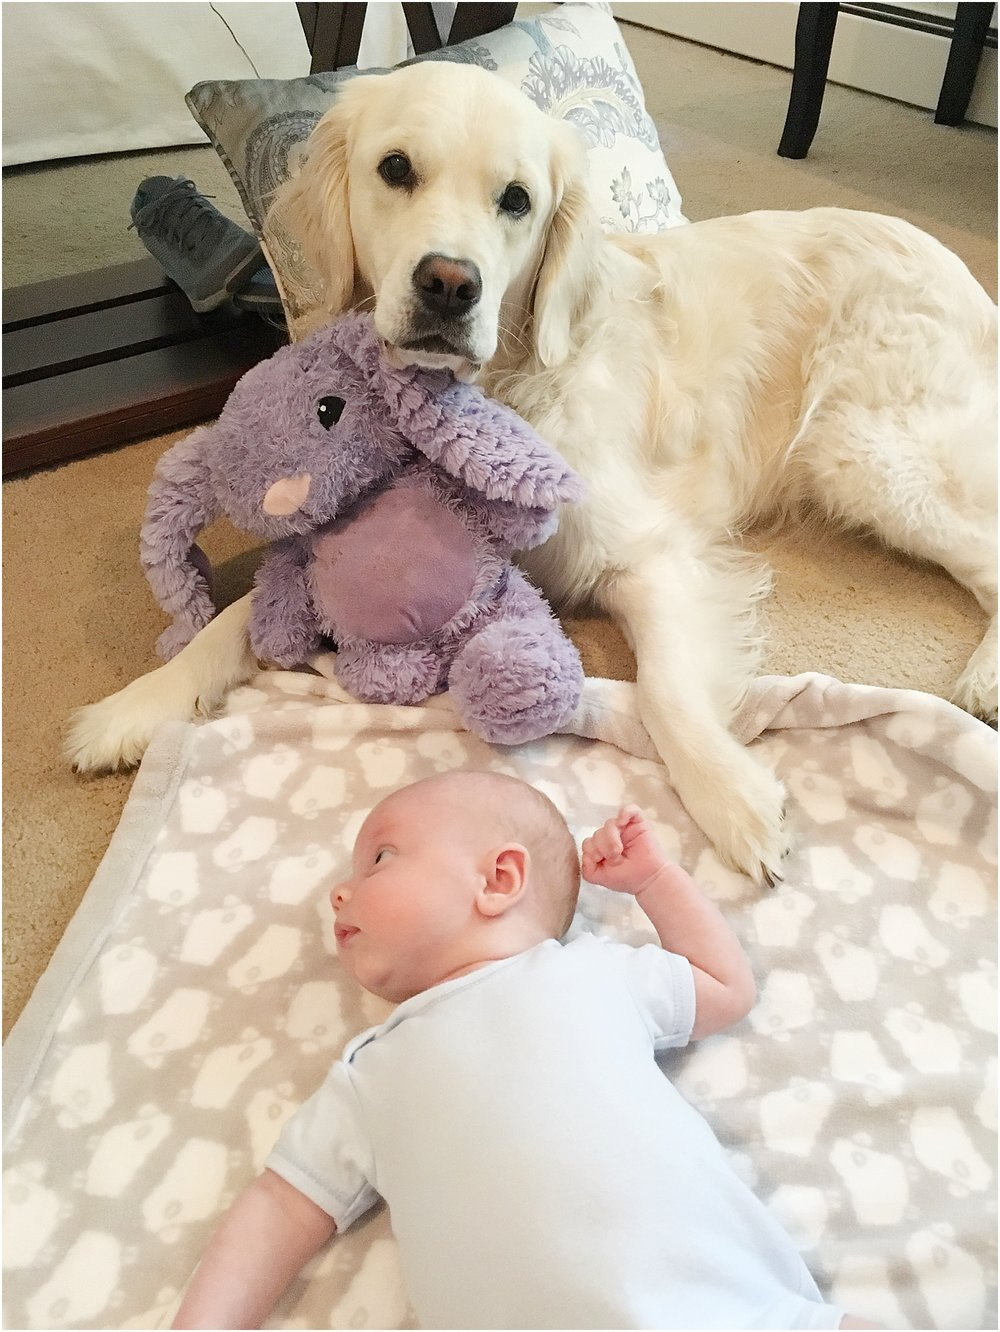 Ellie loves laying with Jack during floor/tummy time!